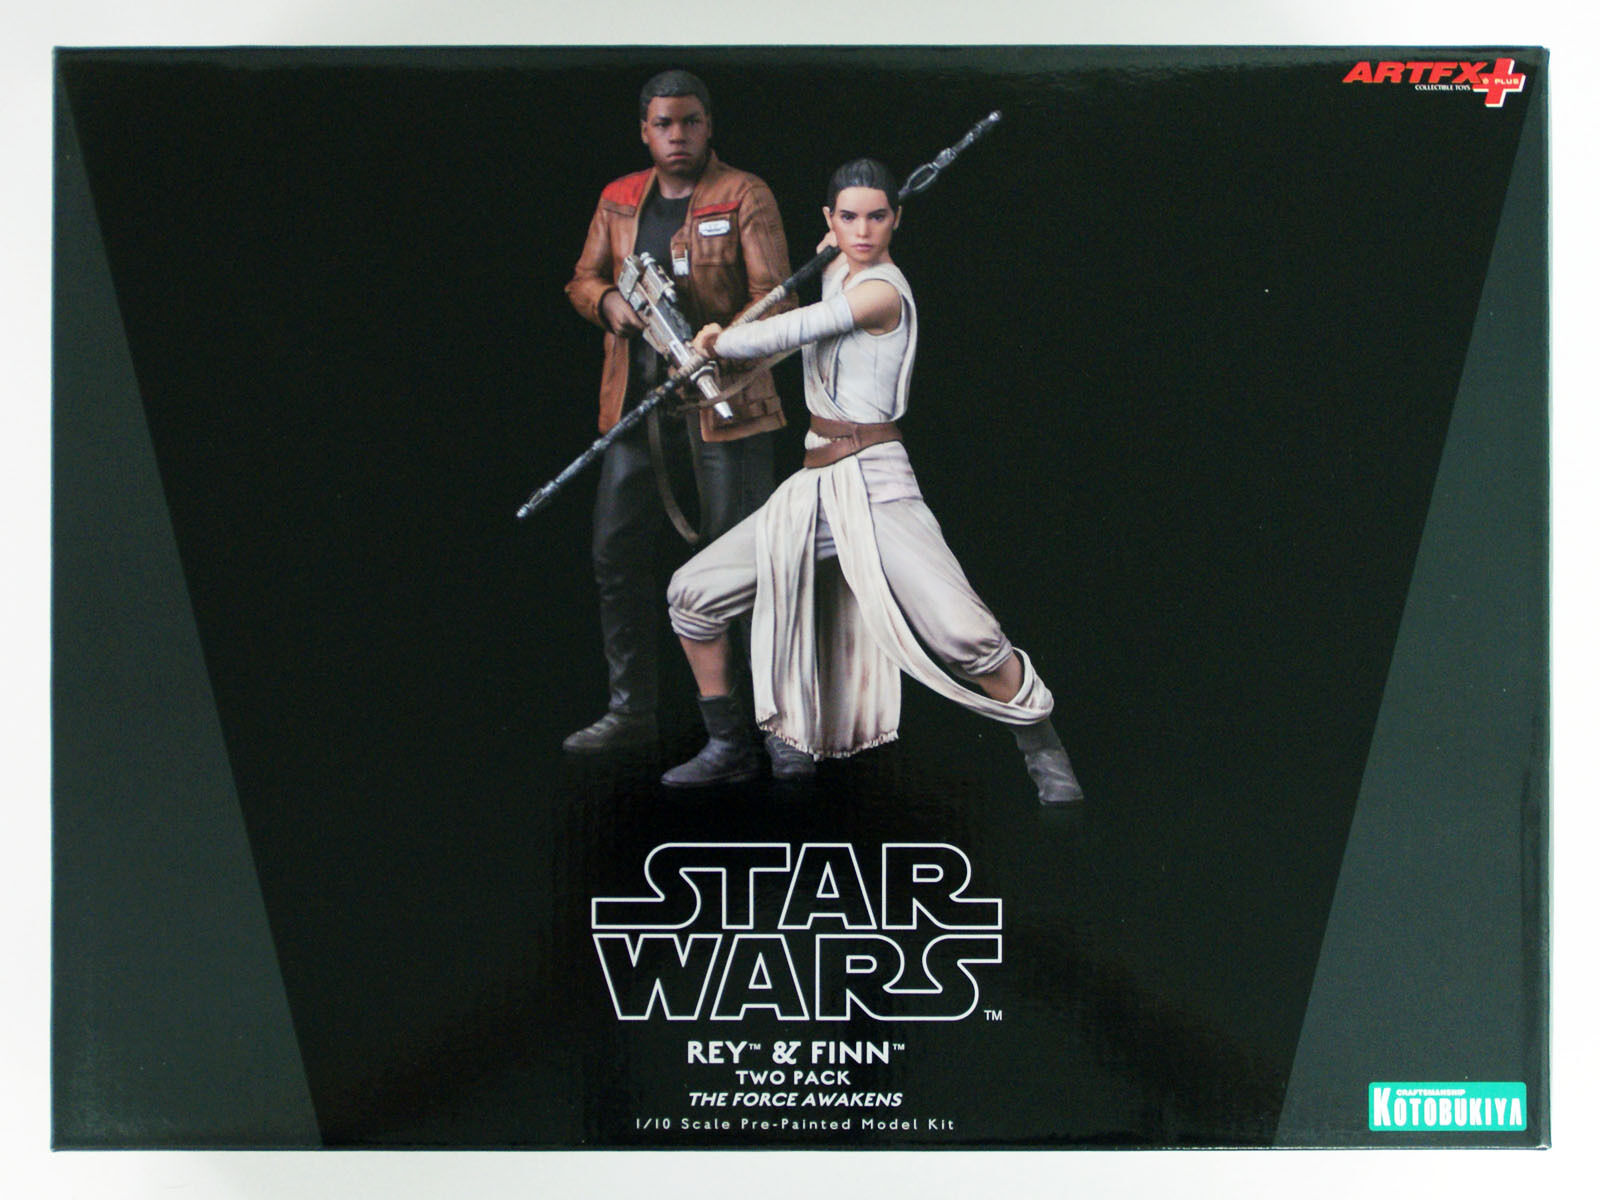 Kotobukiya SW121 ARTFX+ STAR WARS Rey & Finn Set Set Set of 2 1 10 scale Figure cb108b